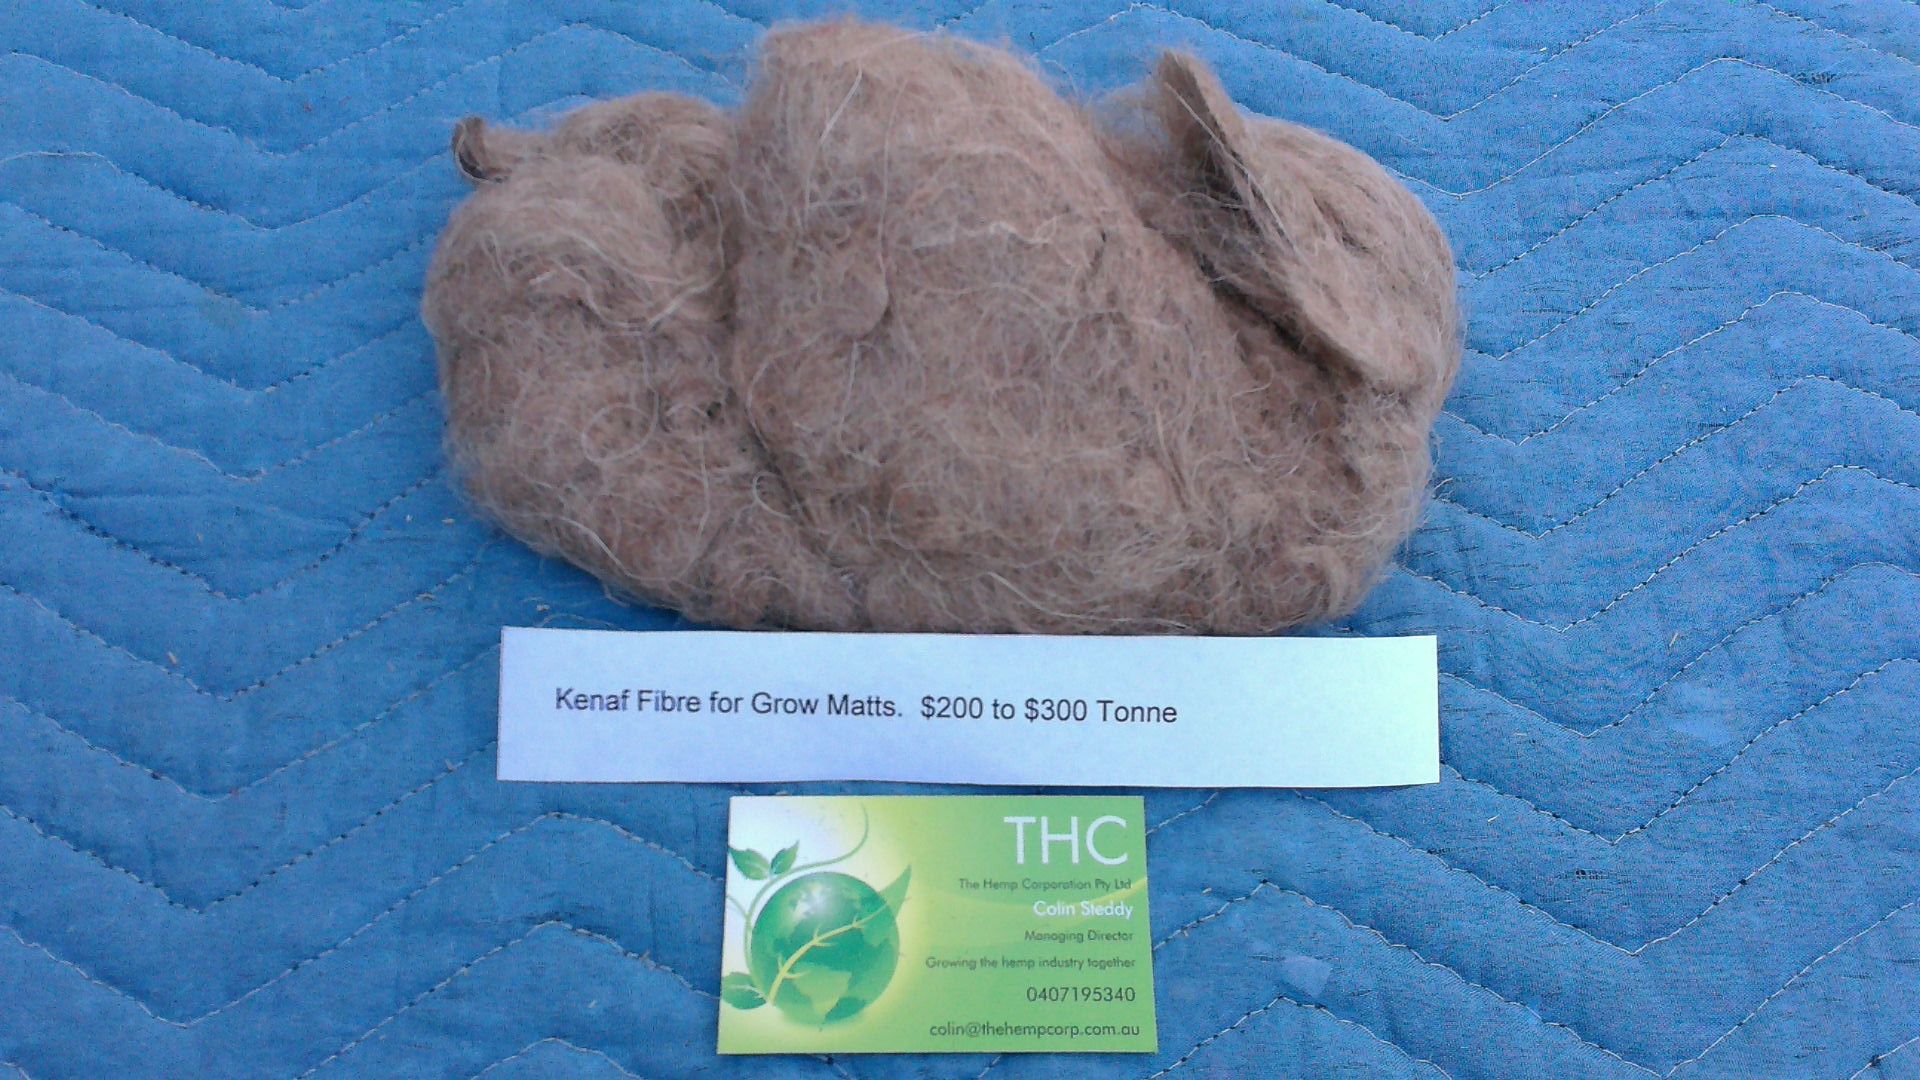 Kenaf fibre for grow mats